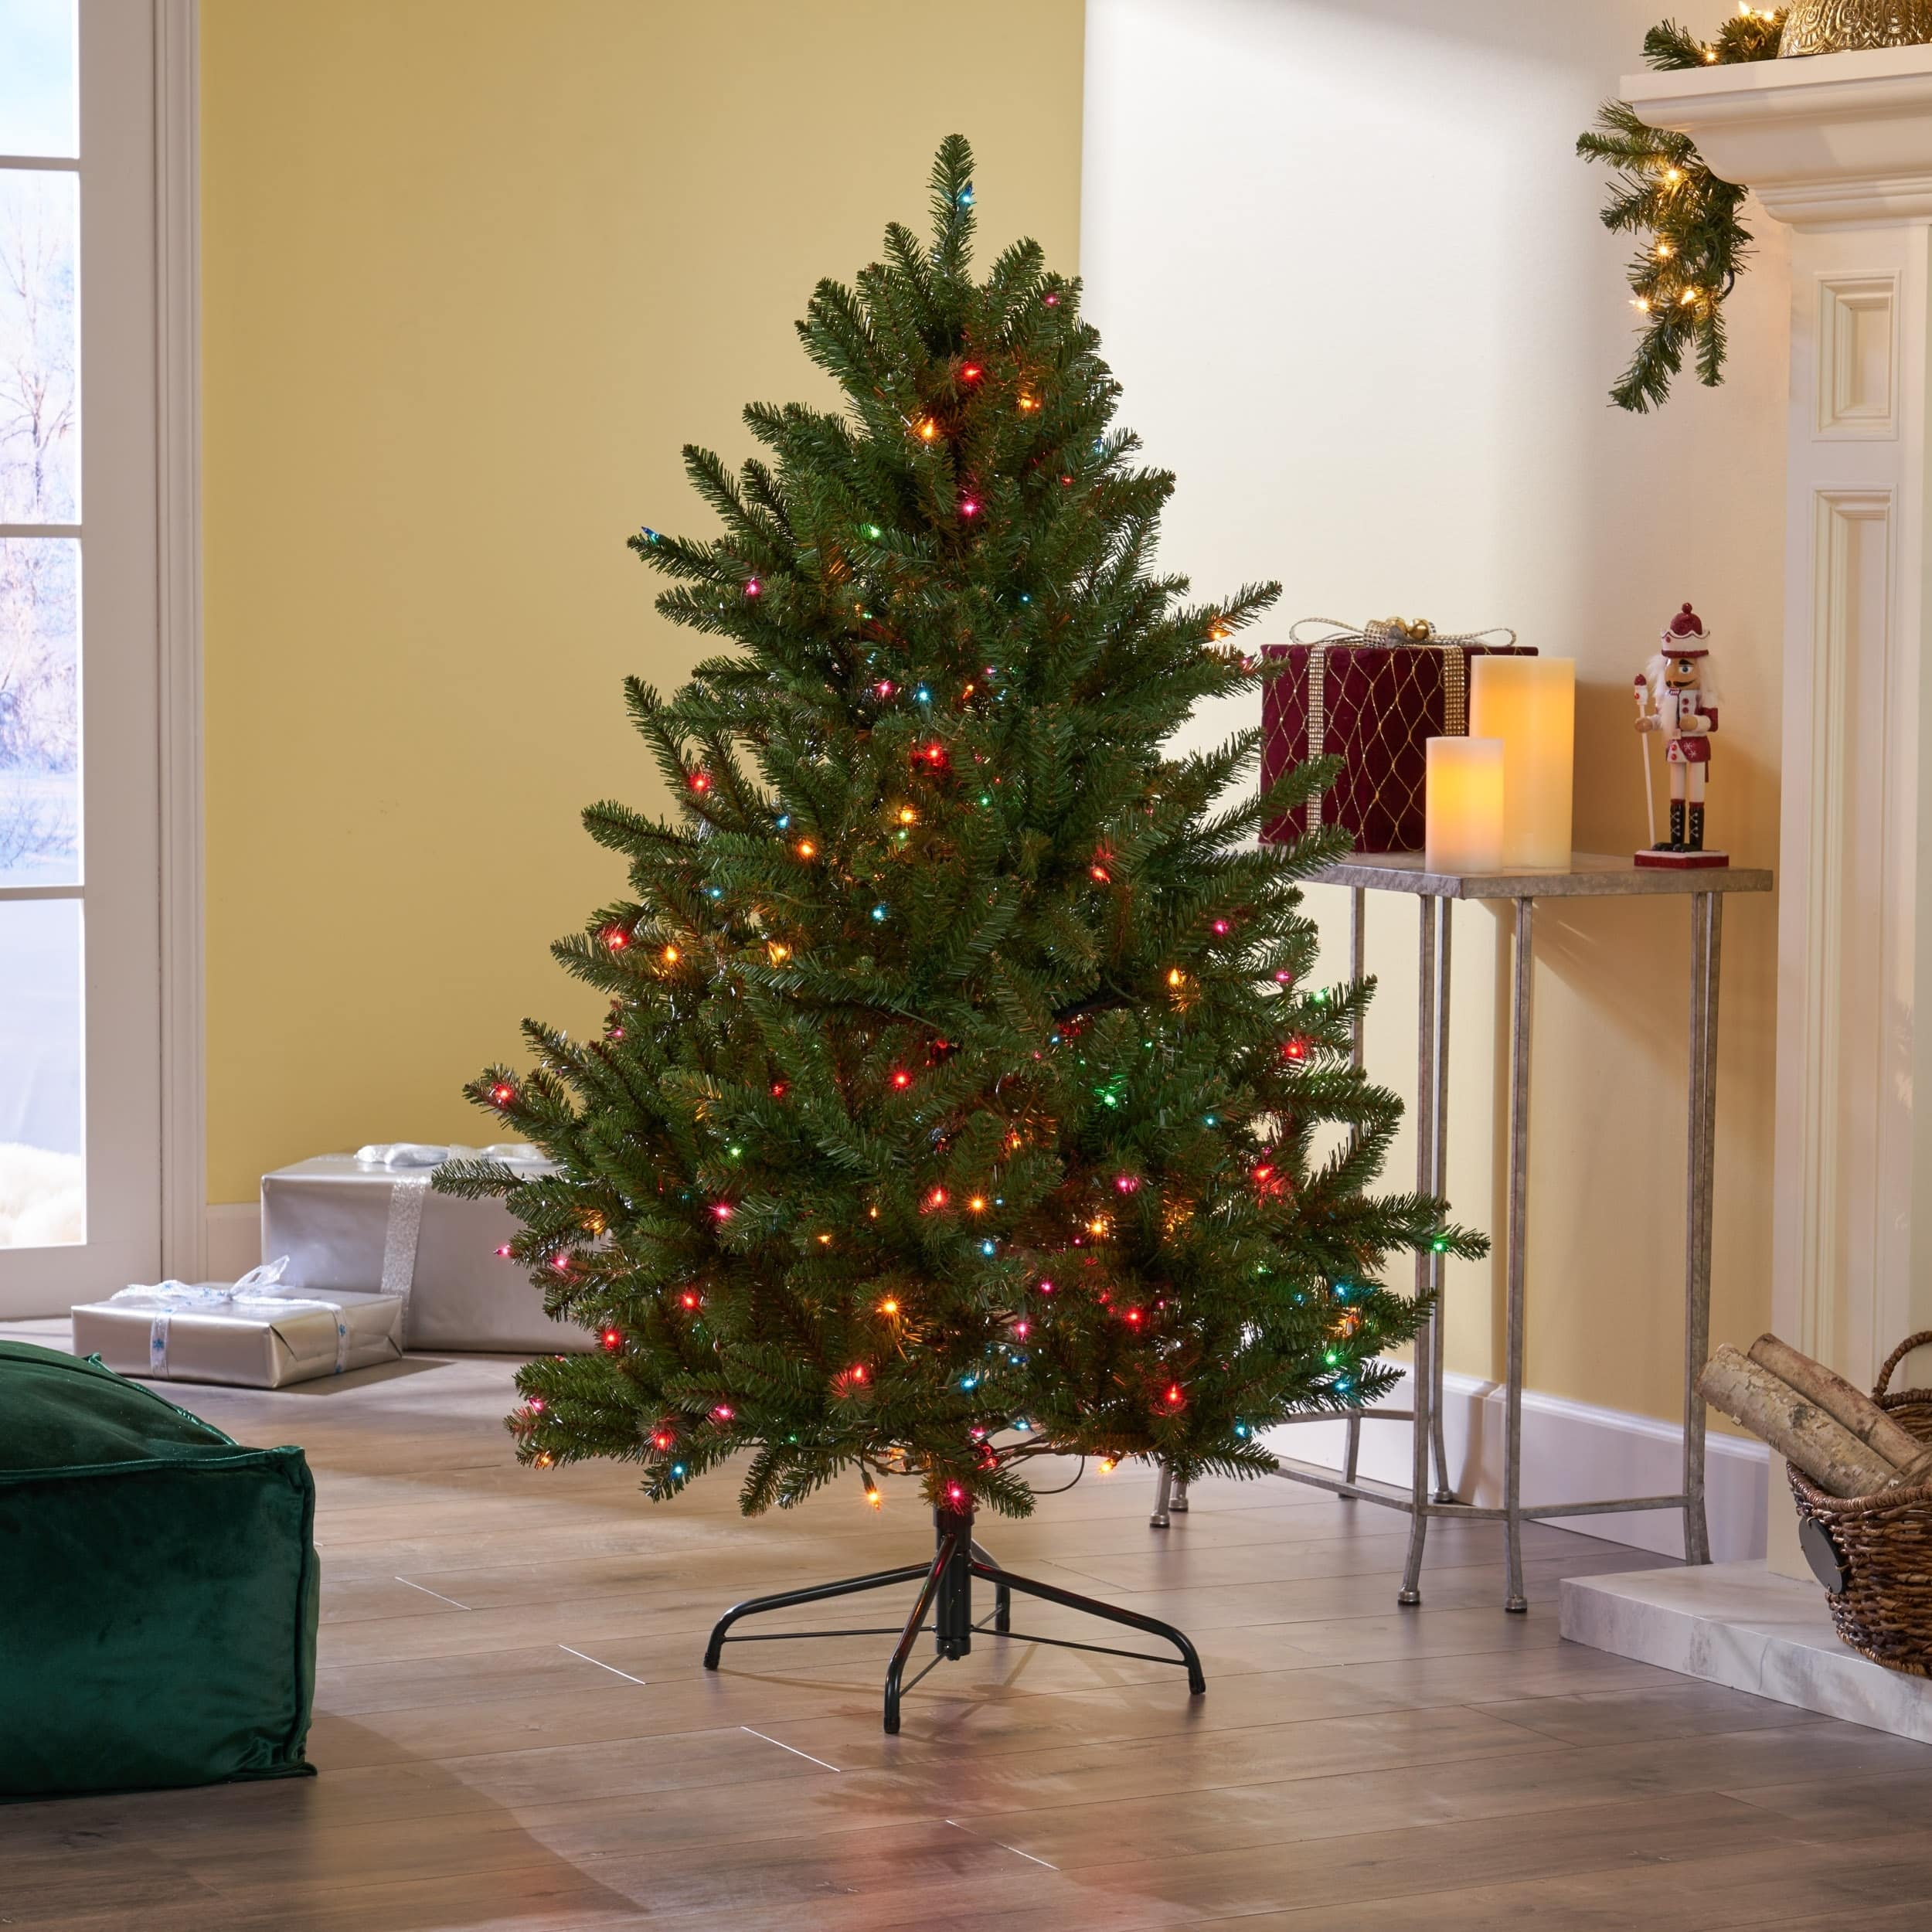 Where To Buy A Nice Artificial Christmas Tree: Buy Artificial Christmas Trees Online At Overstock